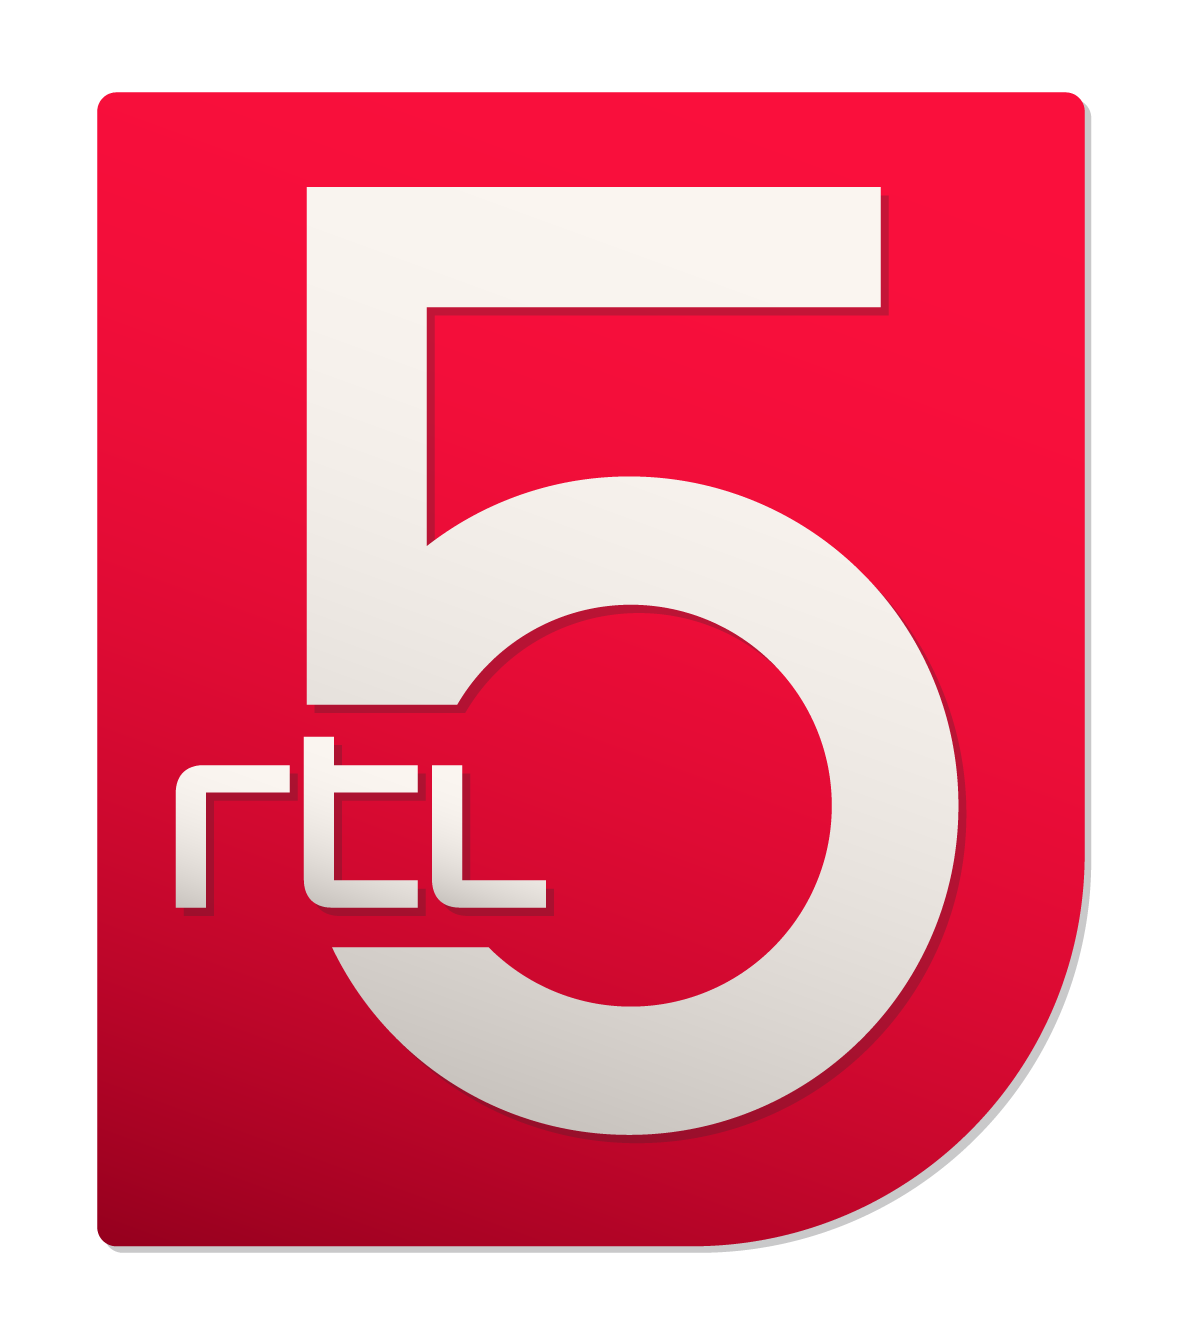 rtl5 dating Rtl 5 october 6, 2016 ben jij single, lekker zelfverzekerd en verre van preuts doe dan mee aan een uniek datingexperiment & show us what you got.